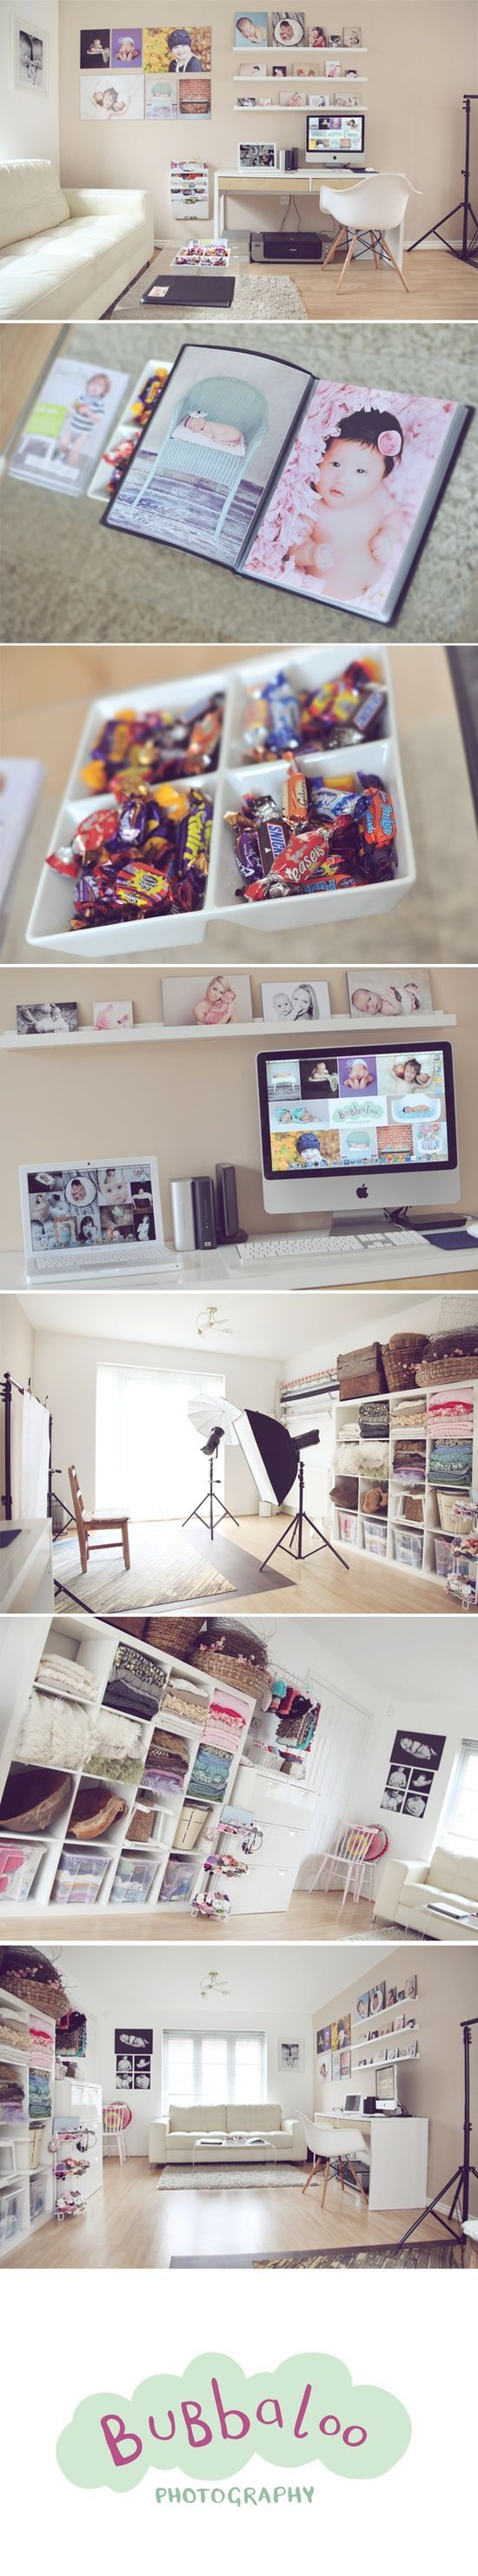 Great small studio space -Bubbaloo Photography -- all you need...LOVE THIS LITTLE SPACE - perfection! ♥